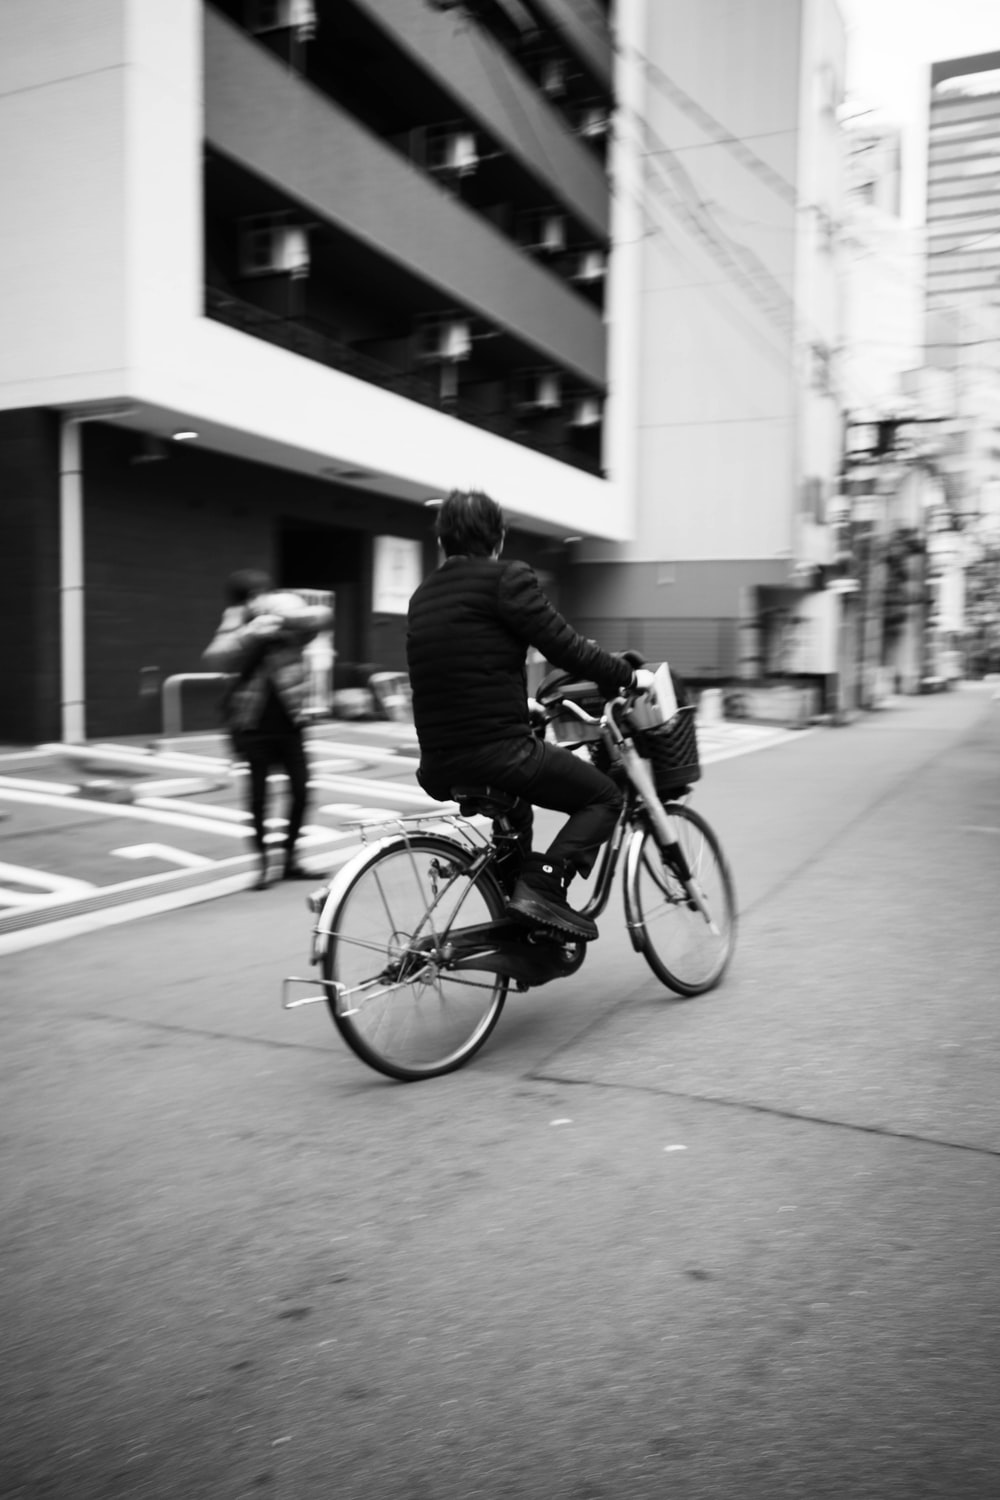 man in black jacket riding bicycle in grayscale photography